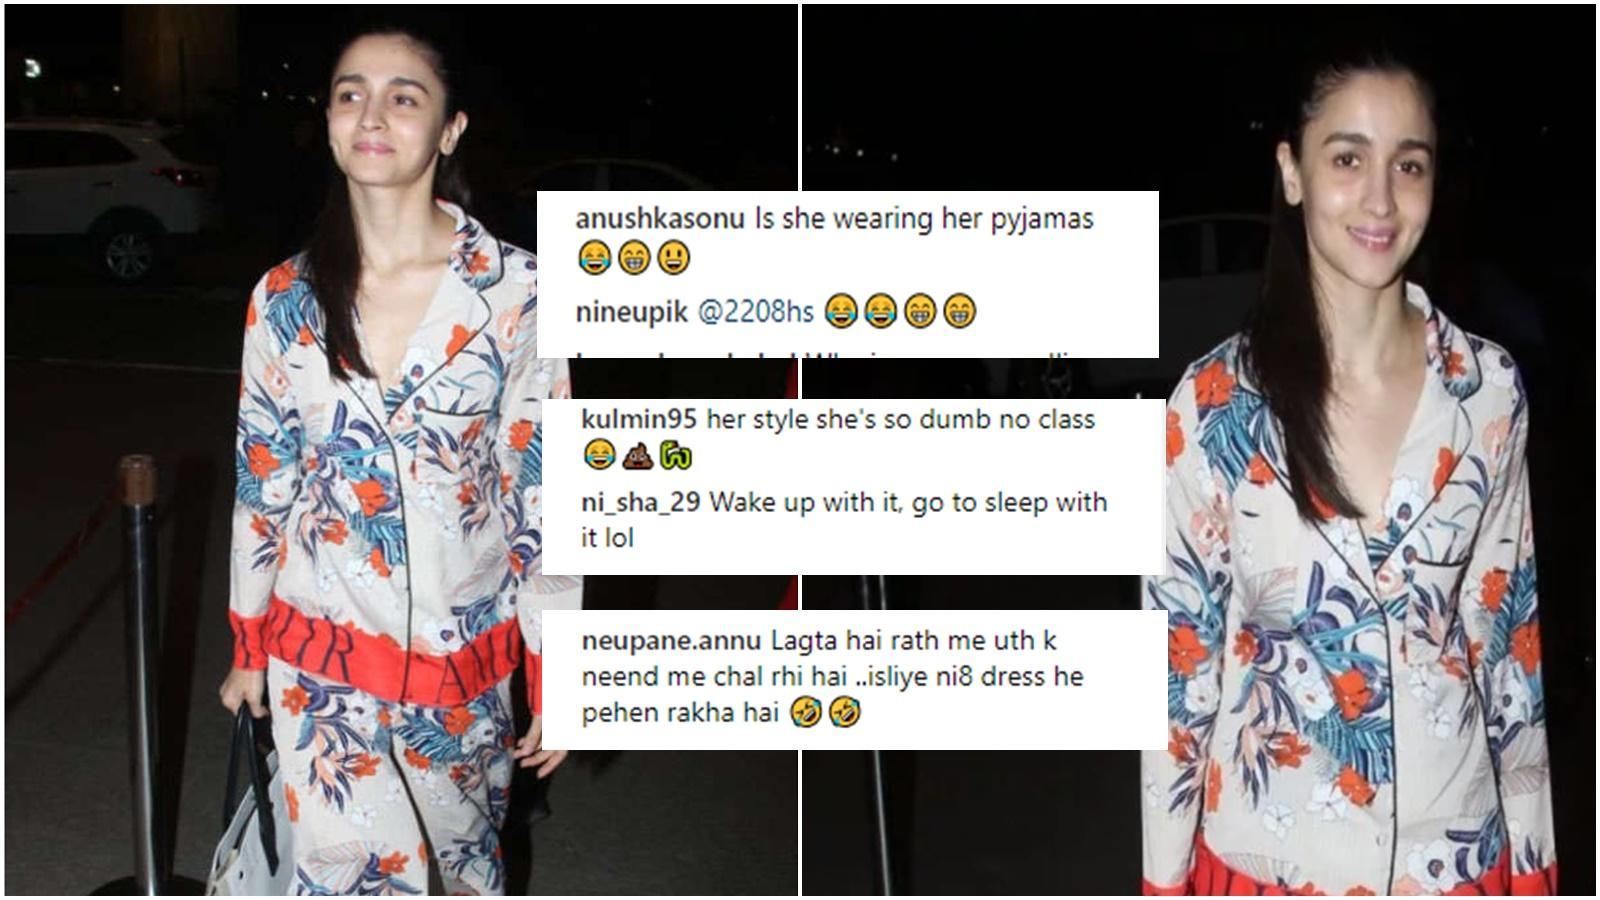 When Alia Bhatt's airport look inspired a field day for online trolls